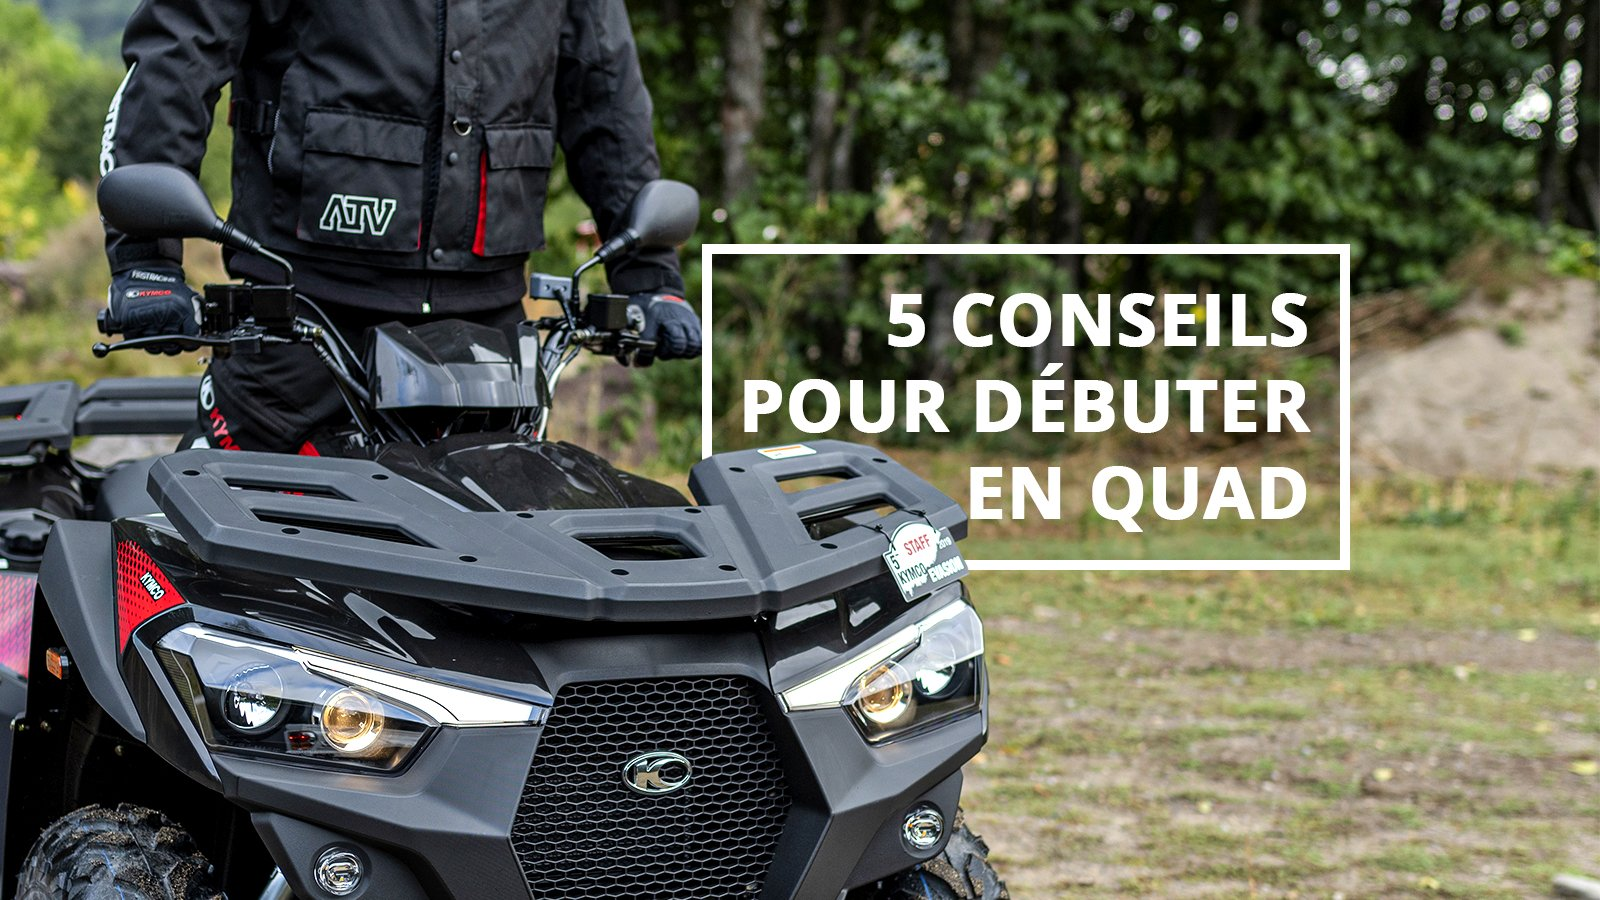 conseil-debuter-quad-featured